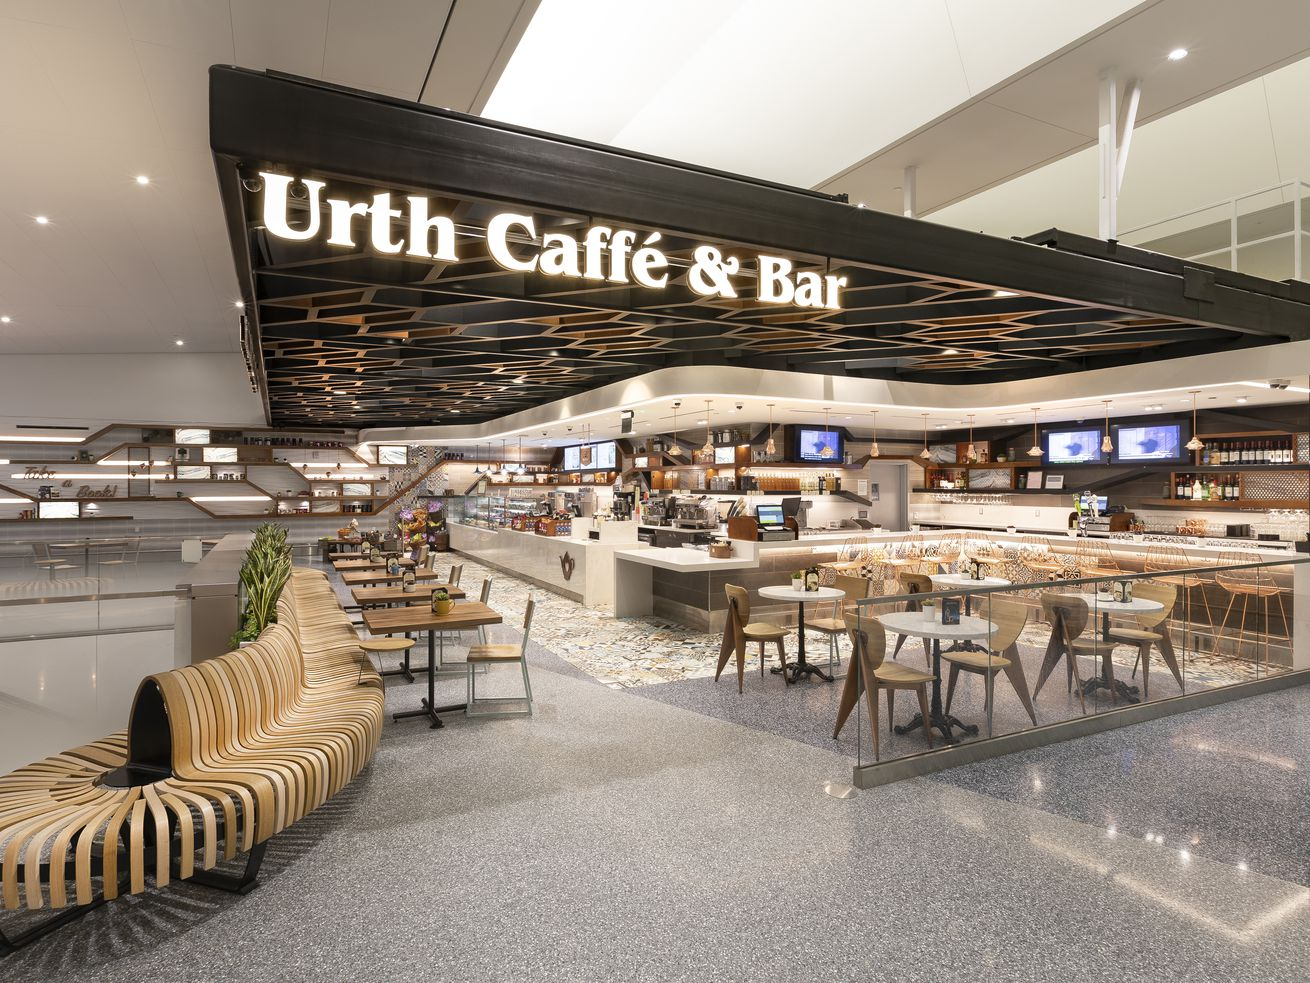 The revamped terminal has new food and retail options.